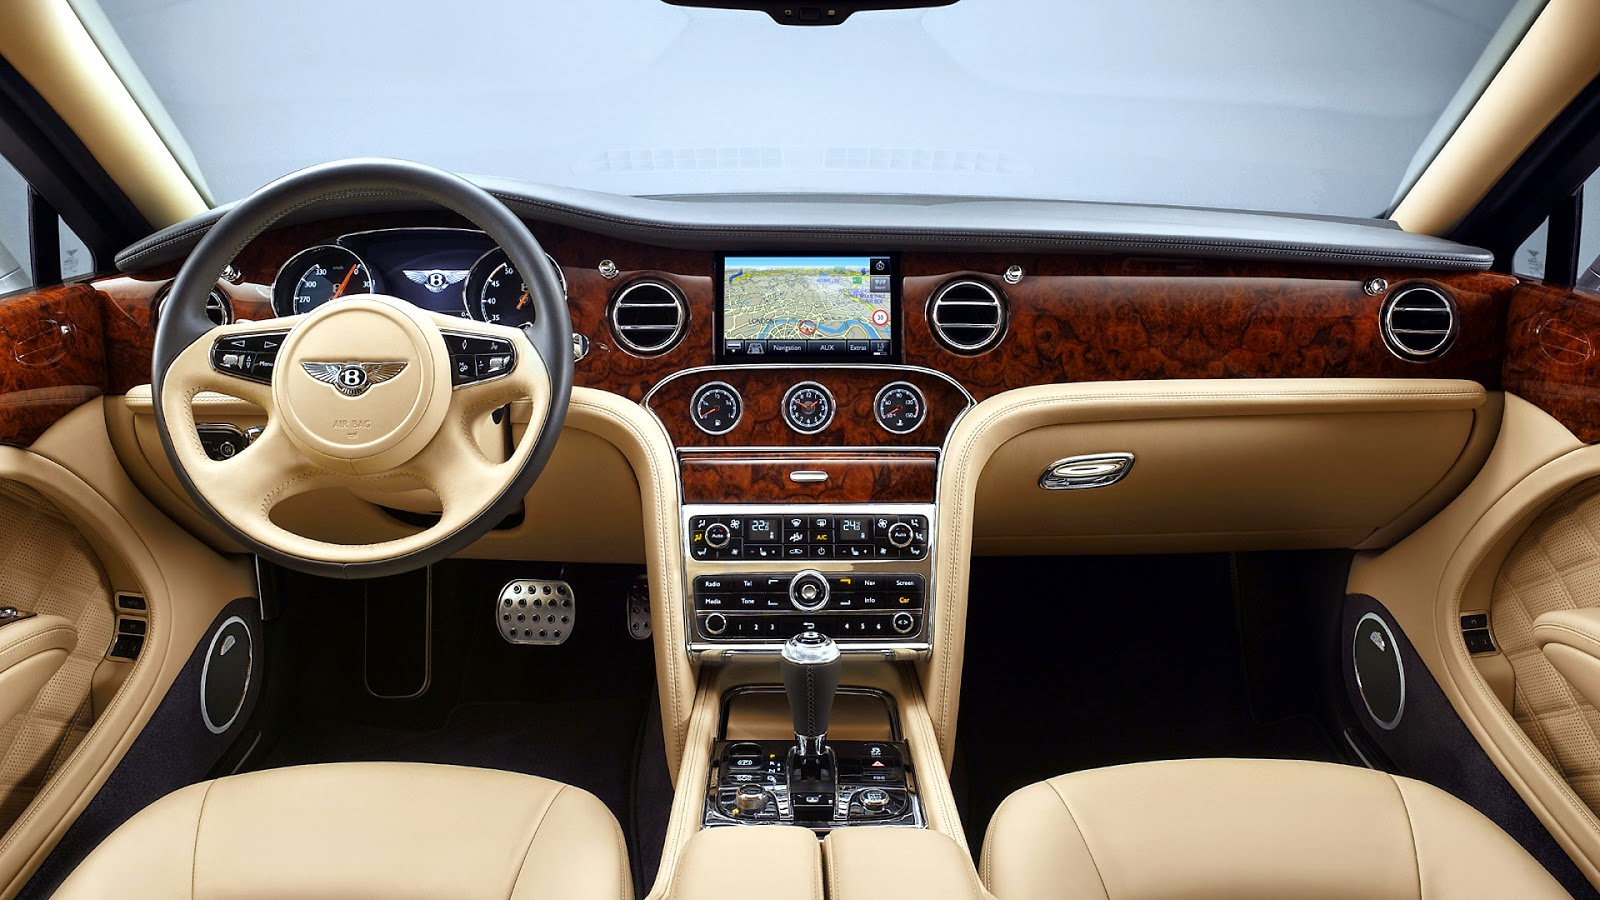 2010 Bentley Mulsanne - Black Front Angle Speed - 1280x960 - Wallpaper